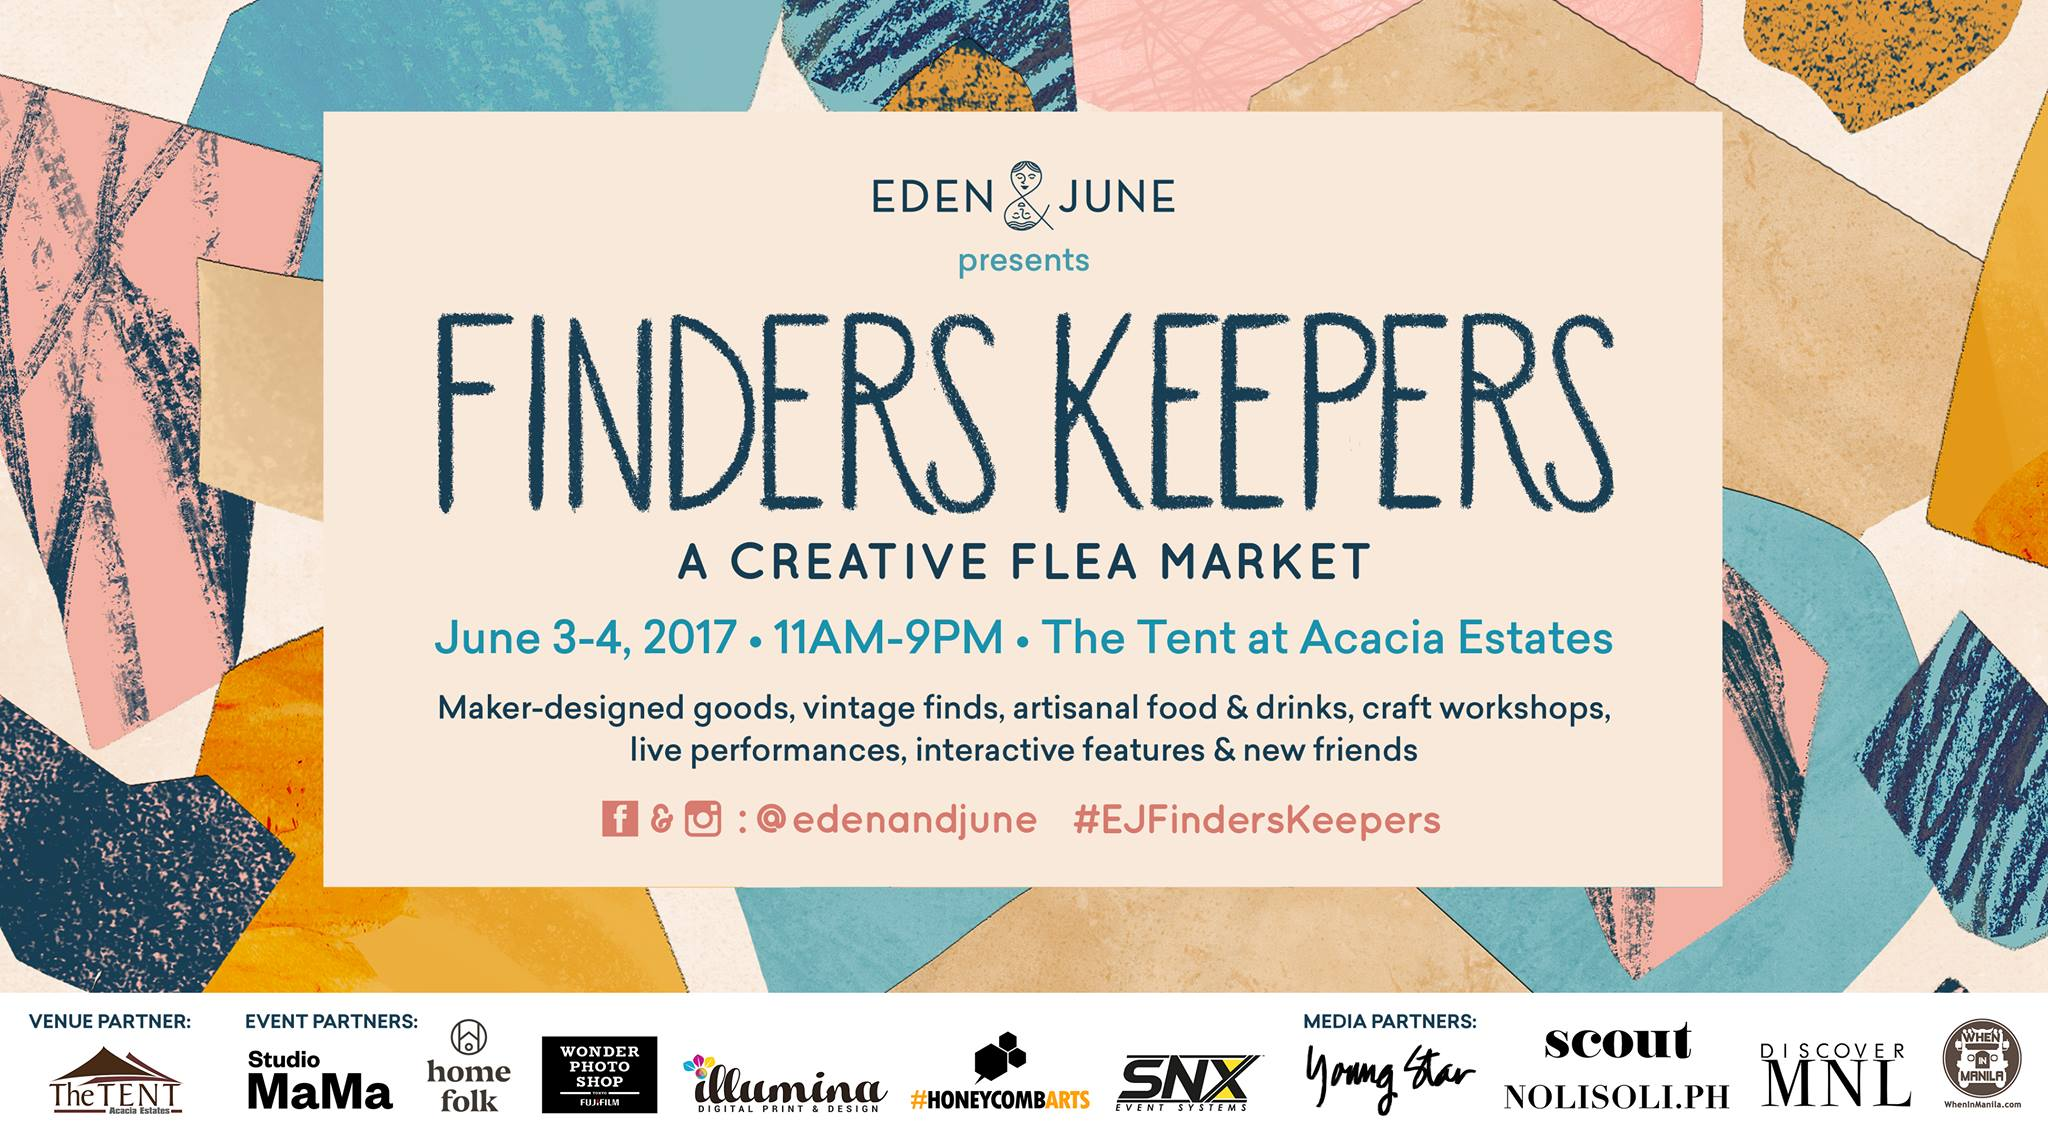 Finders Keepers • A Creative Flea Market